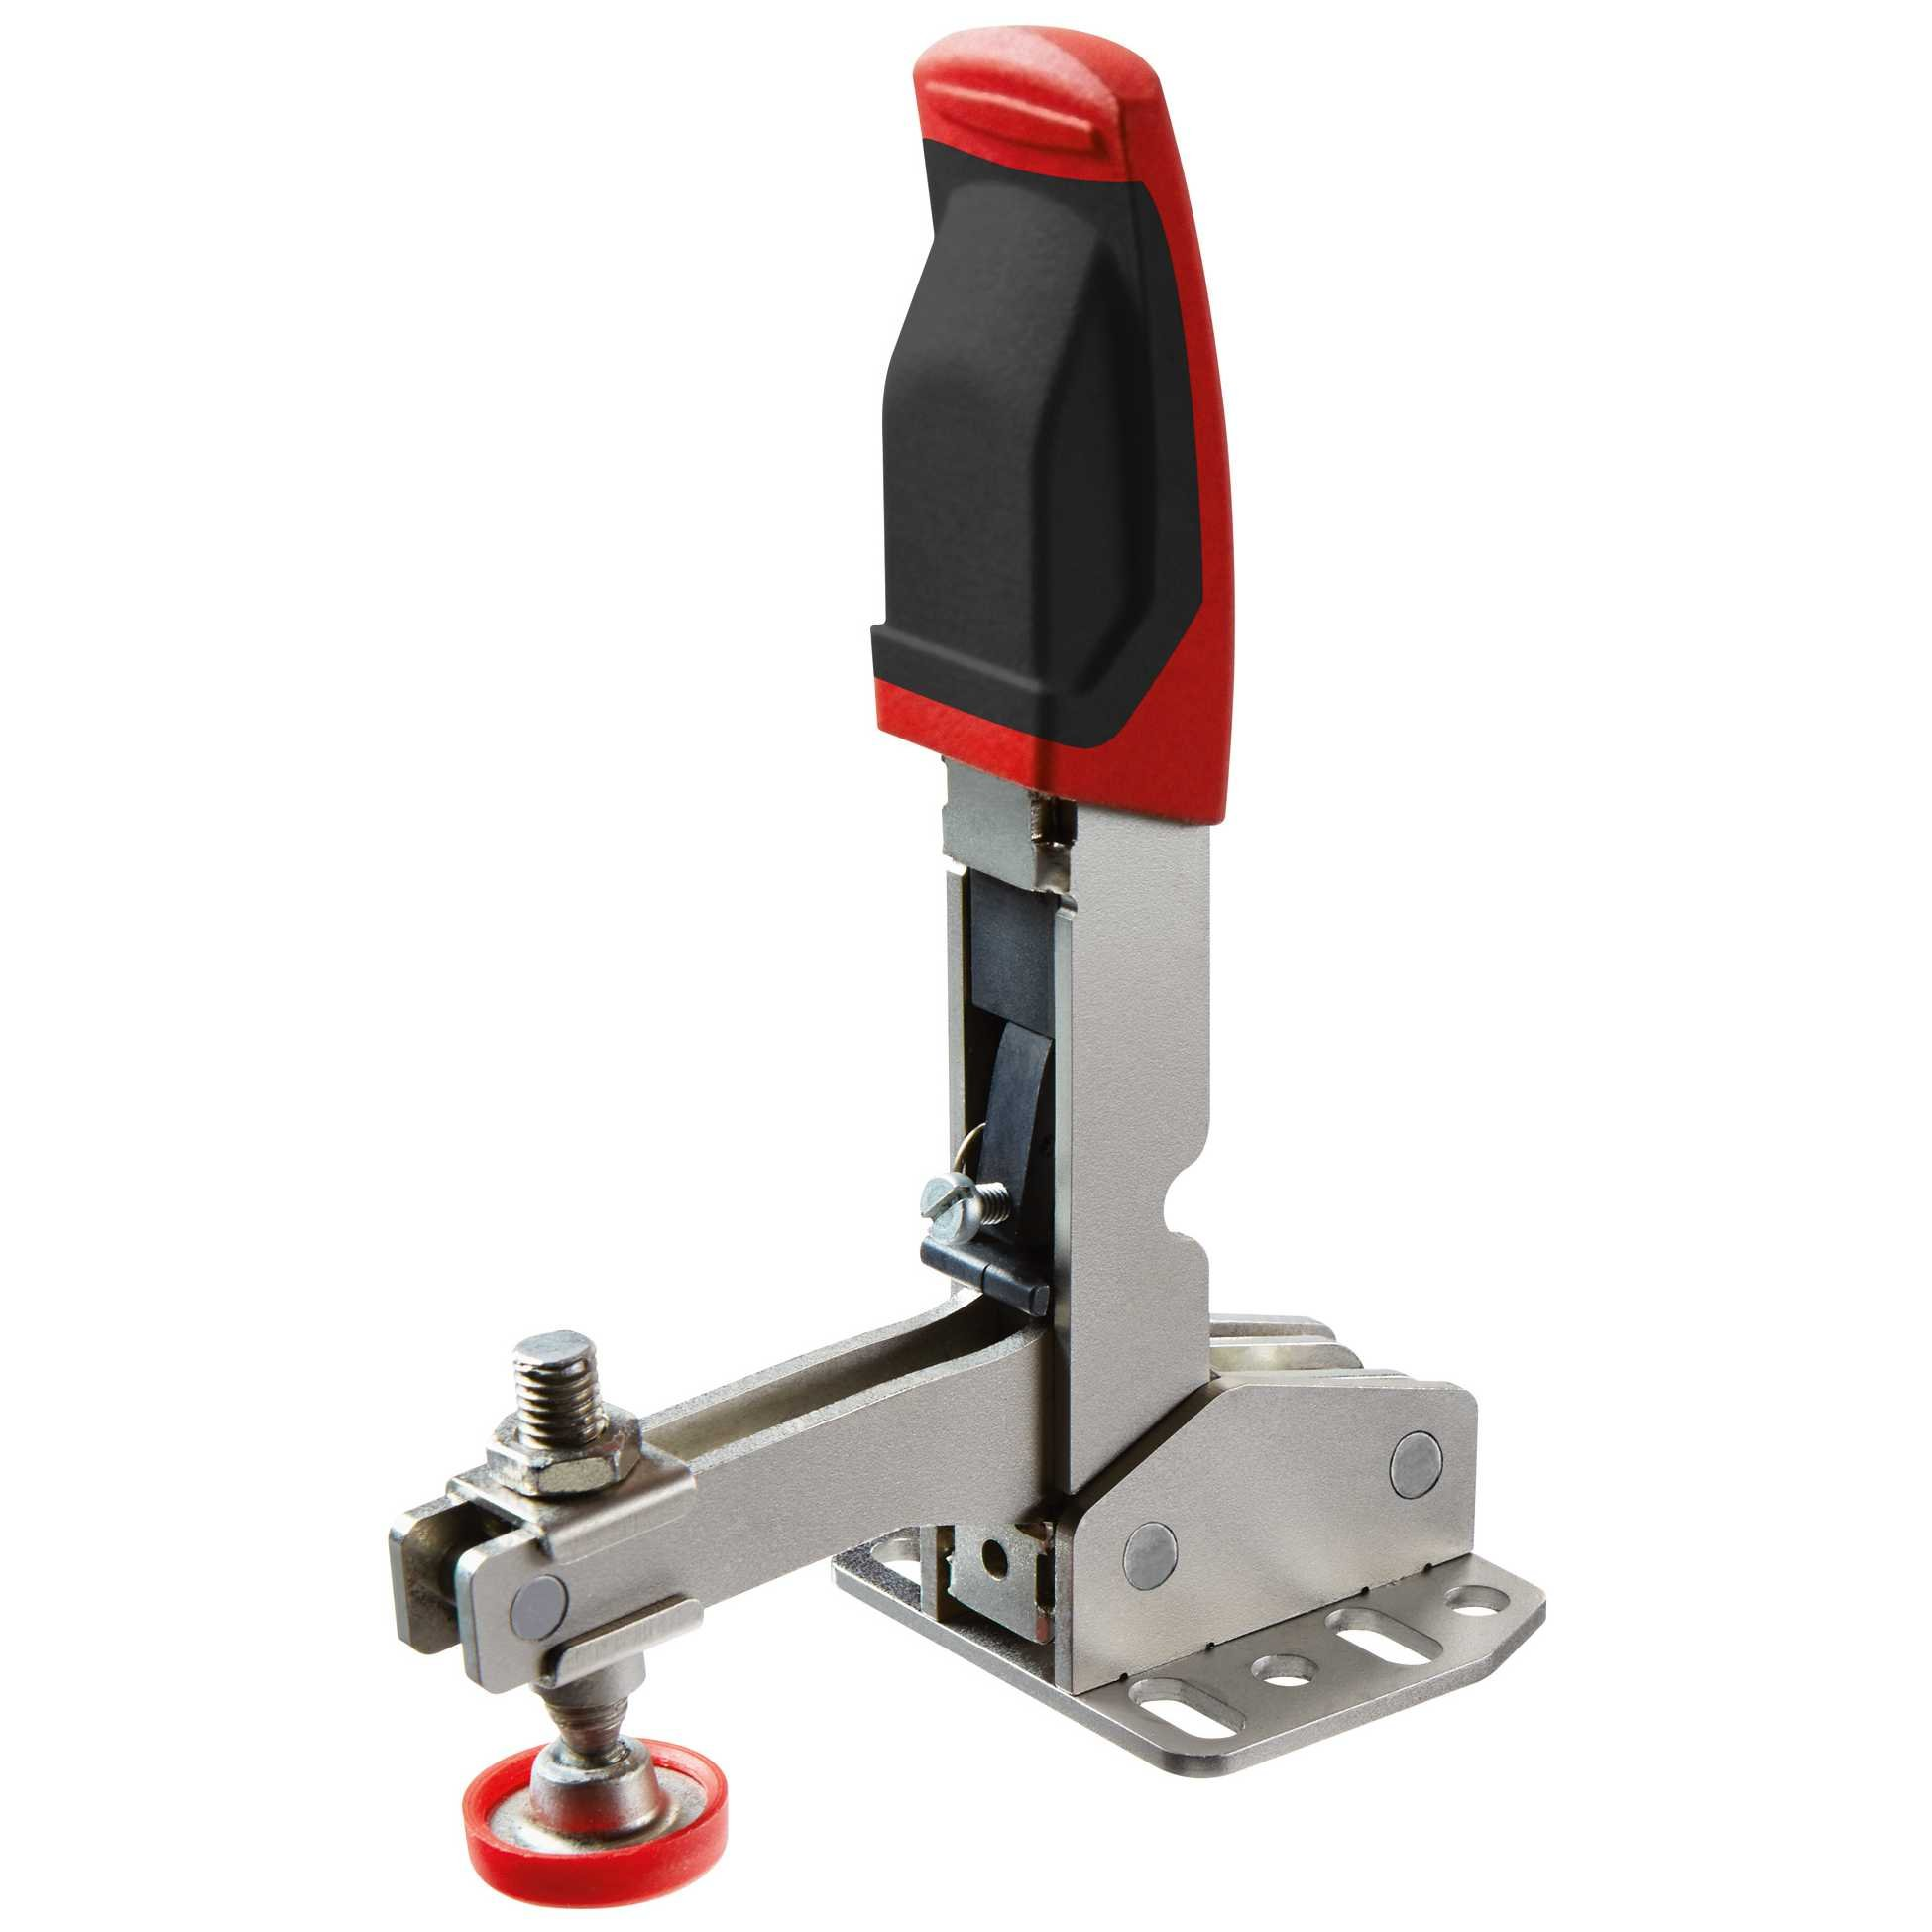 Vertical toggle clamp with open arm and horizontal base plate STC-VH20